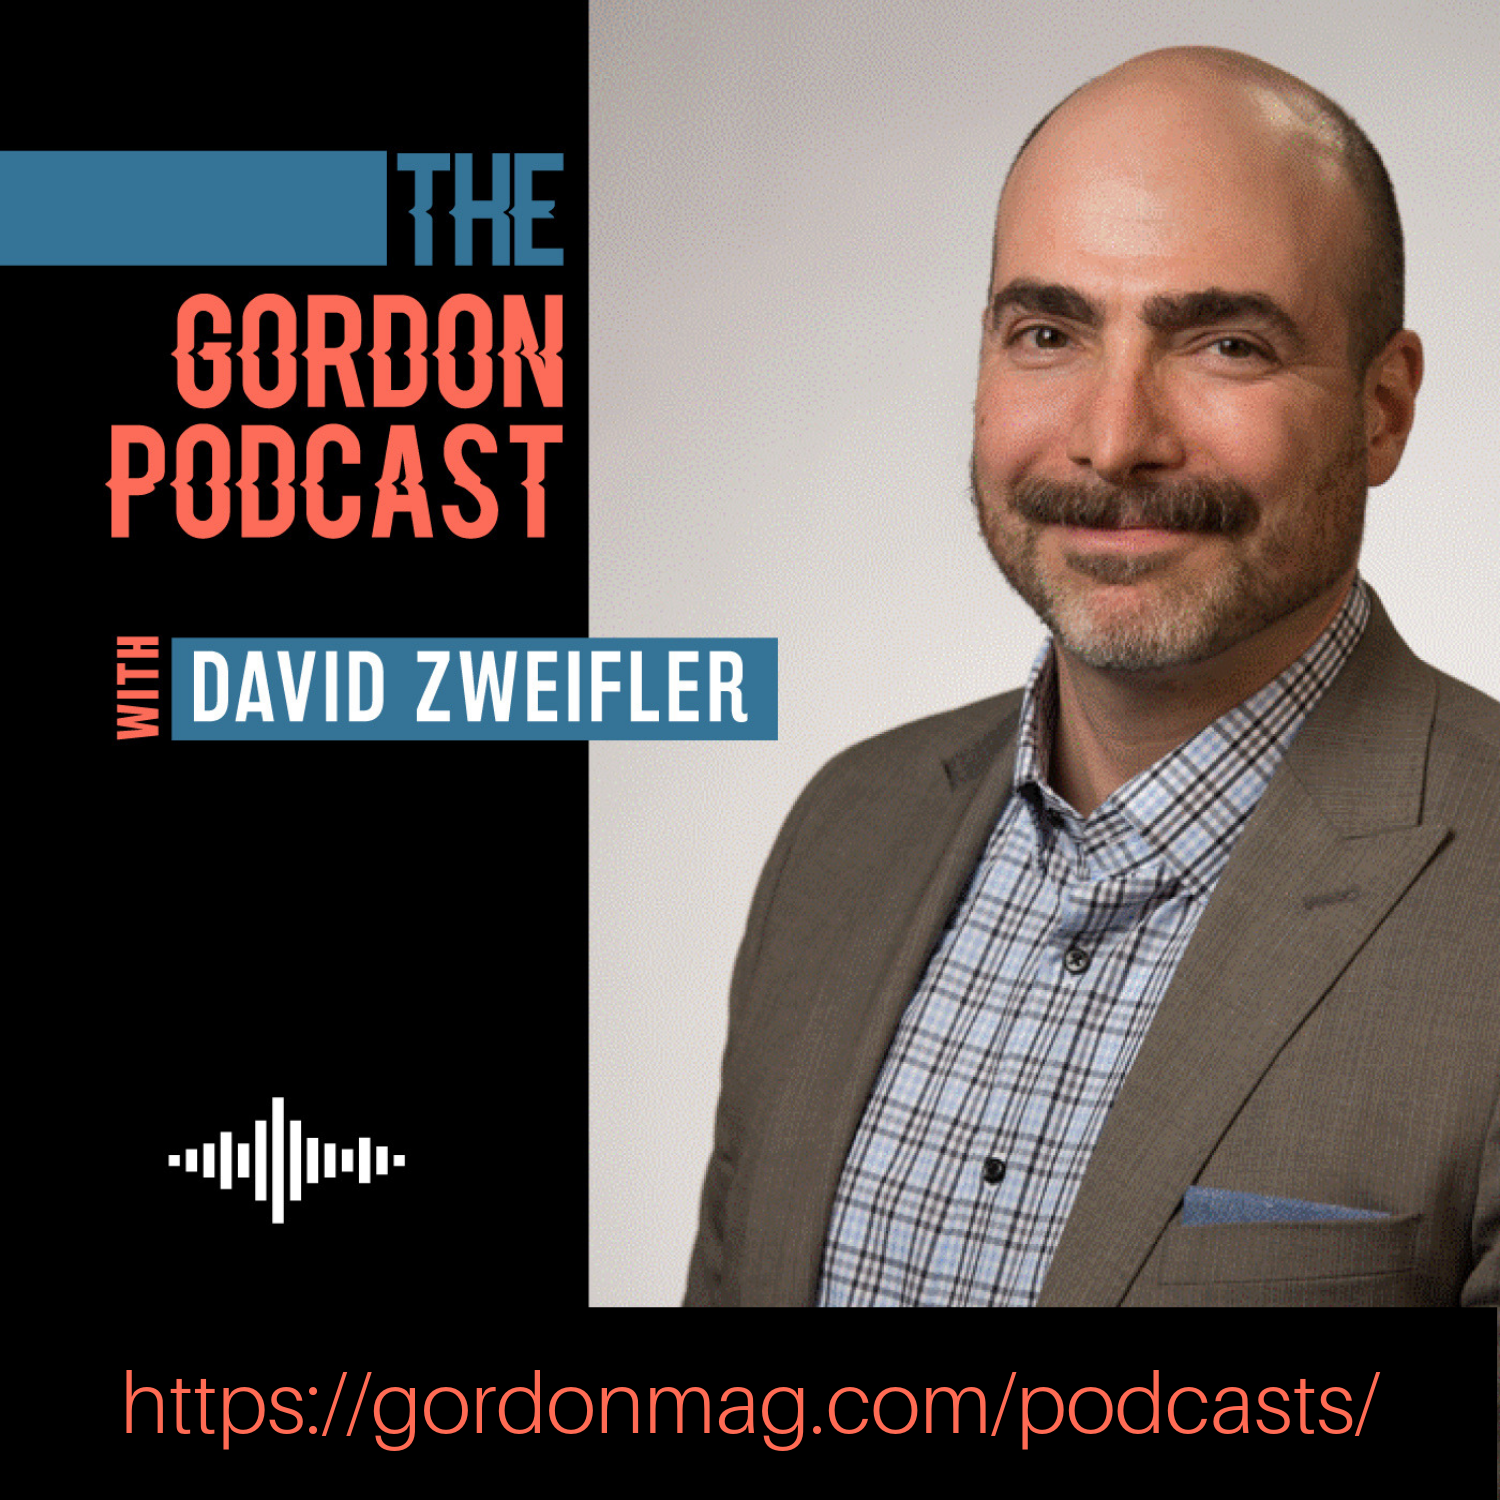 Episode 7: Why Big Retail Needs To Start Thinking Small